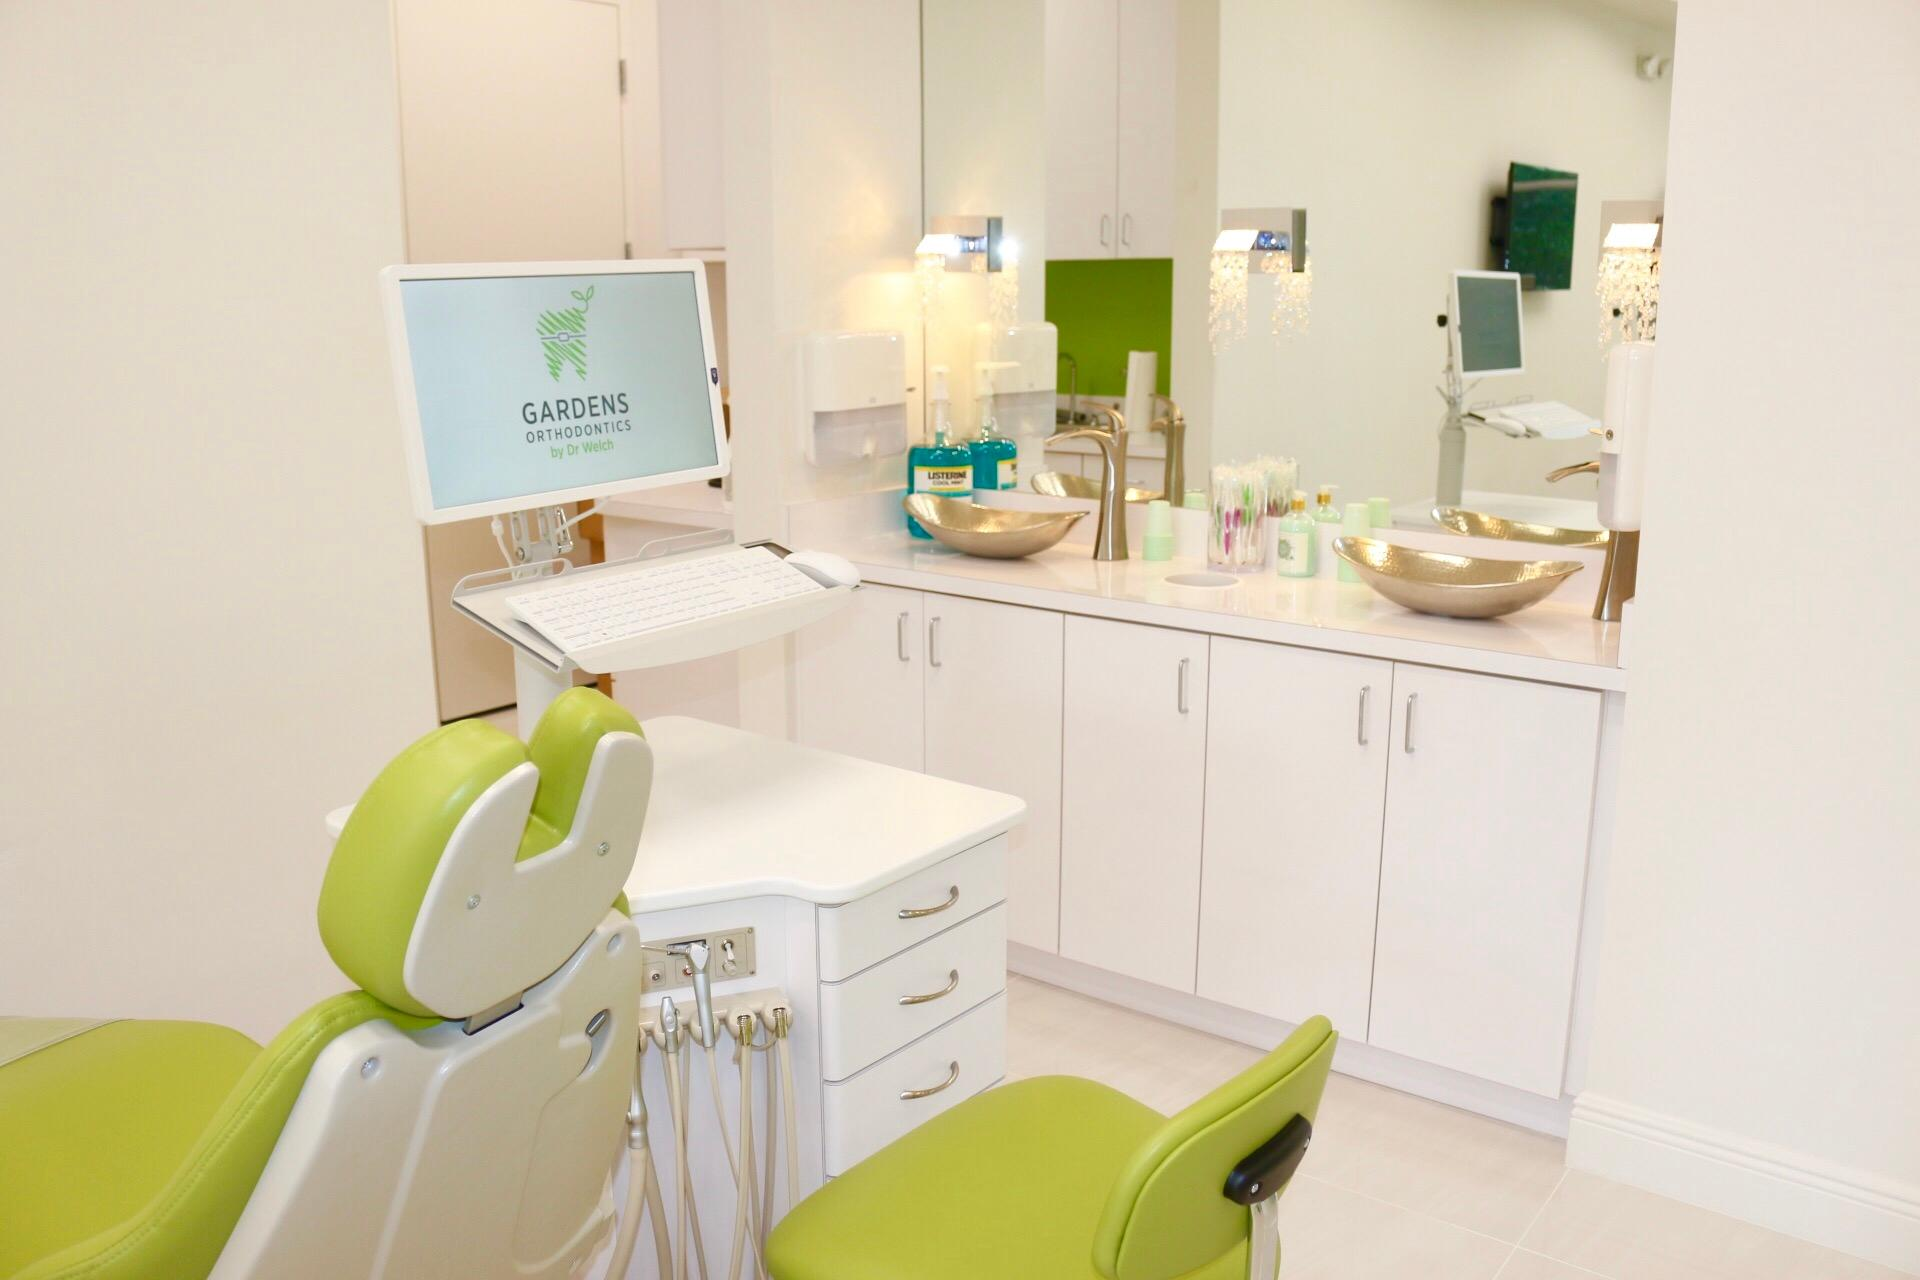 Gardens Orthodontics In Palm Beach Gardens Fl 33410